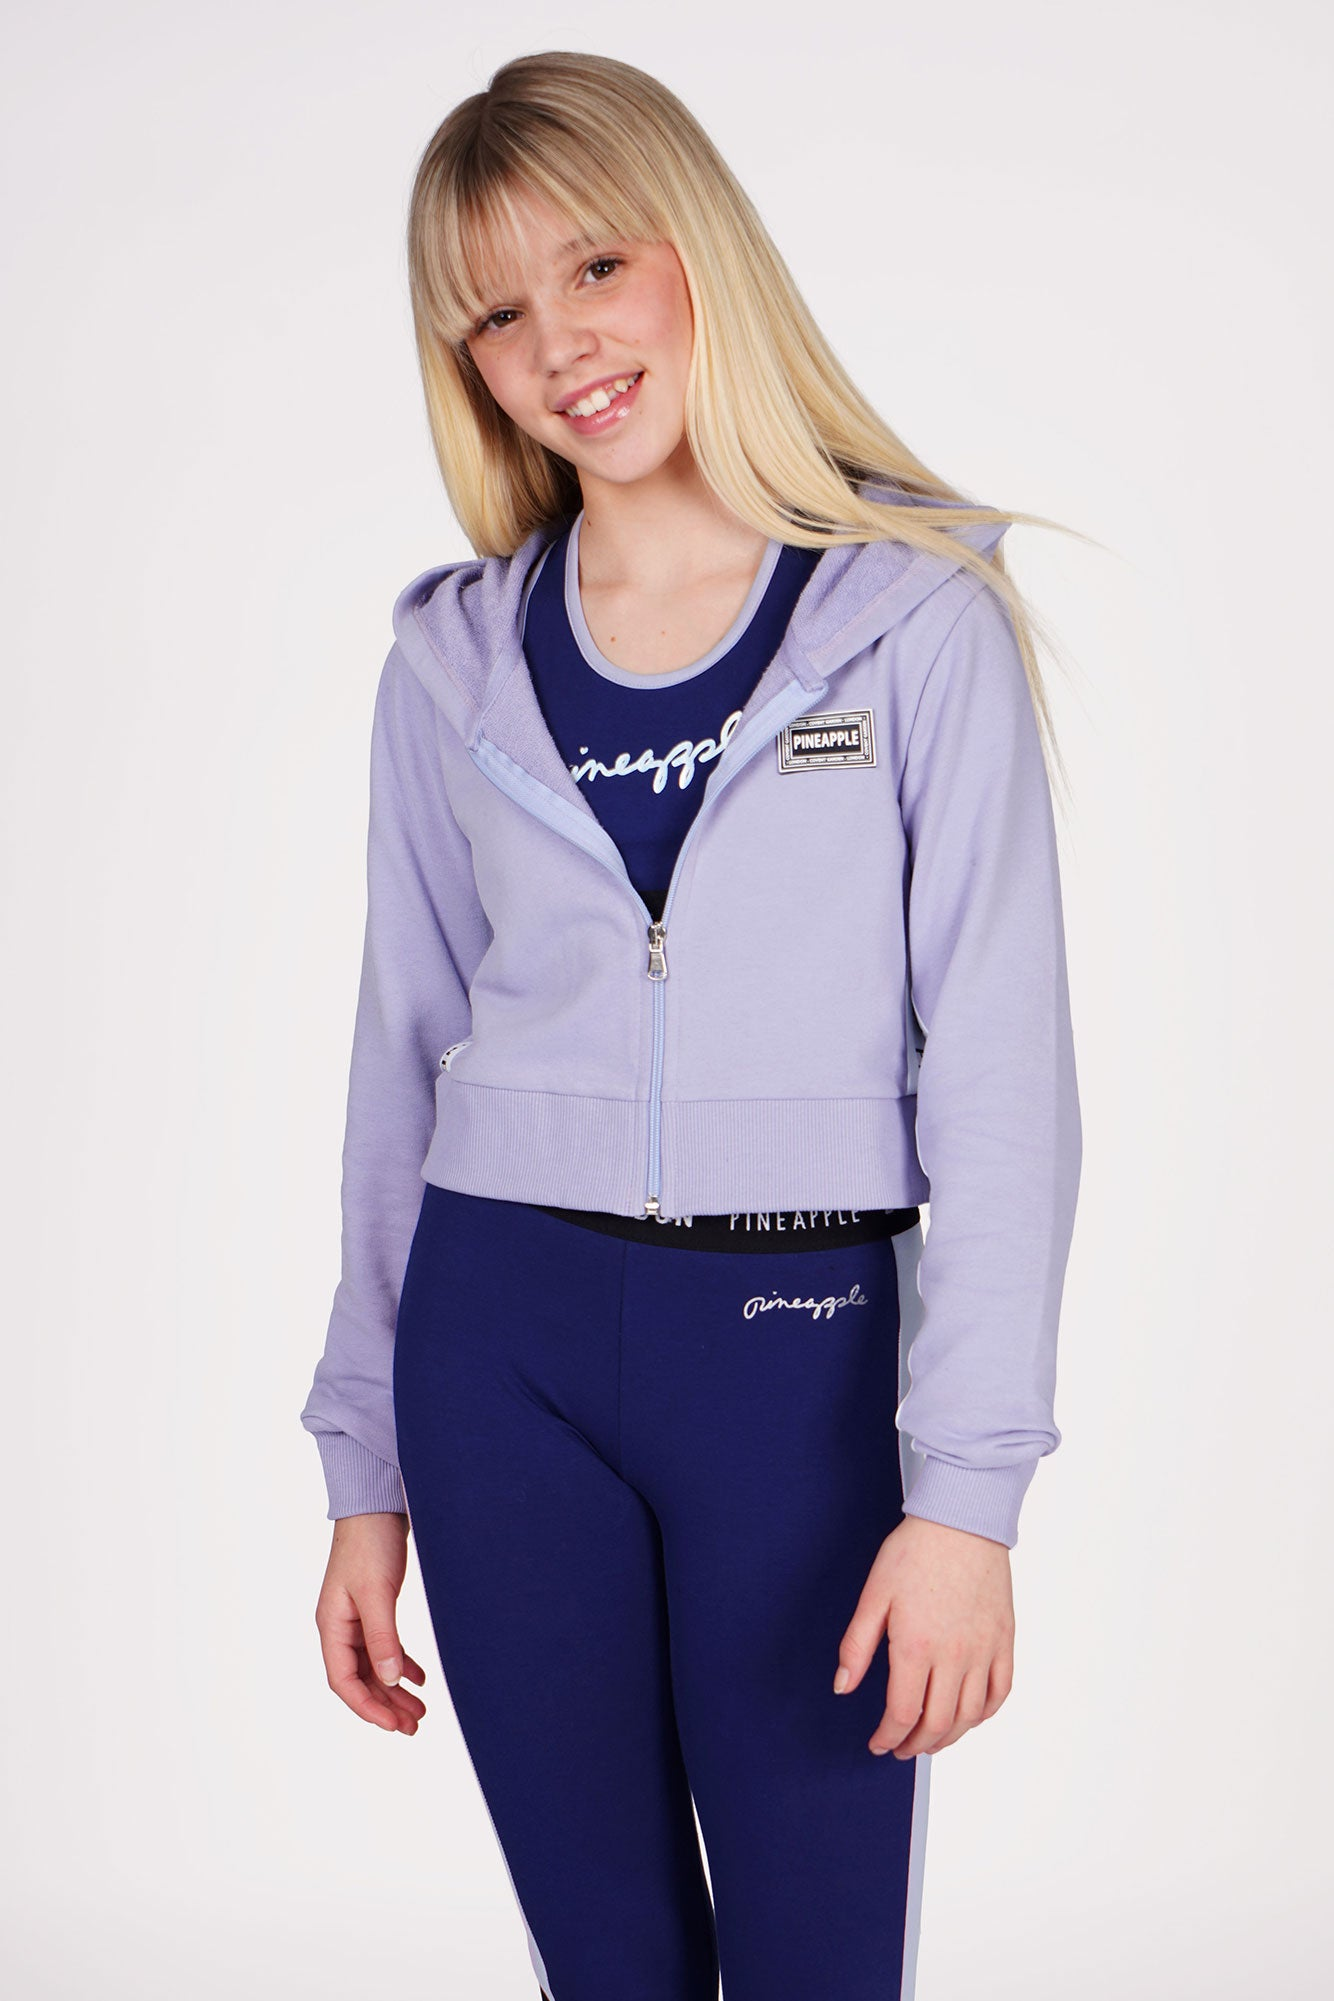 Girl wearing Lilac Blue Pineapple Tape Zip Hoodie with Navy Blue Panel Racer Bra Top and Navy Blue Mesh Panel Leggings